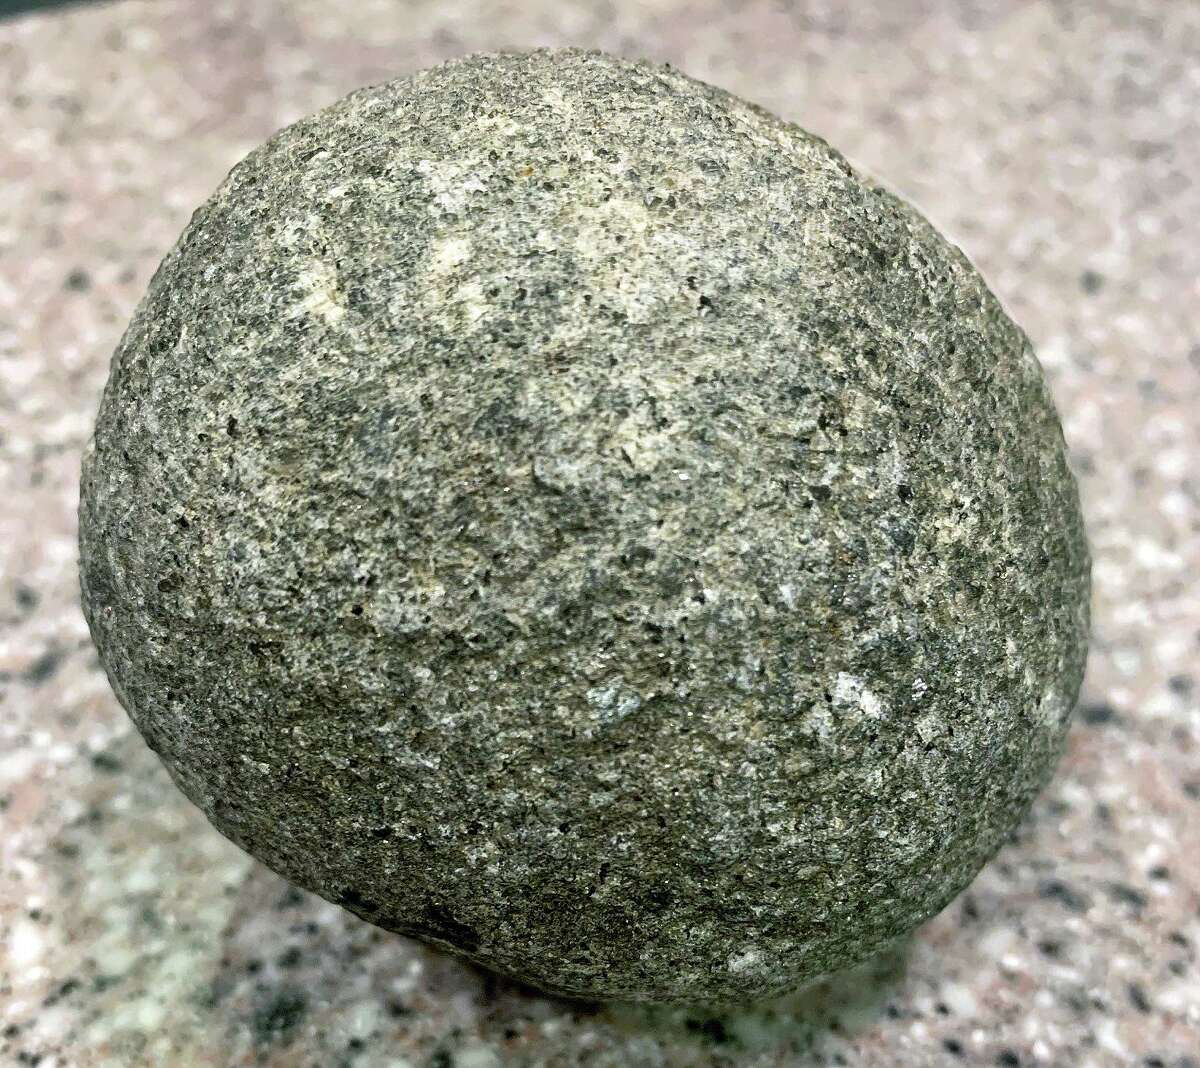 Several ground stone or pecked stone spheres have been found in Connecticut, but they are a mysterious artifact type that is found all over the world and from different time periods, according to the state archeologist.